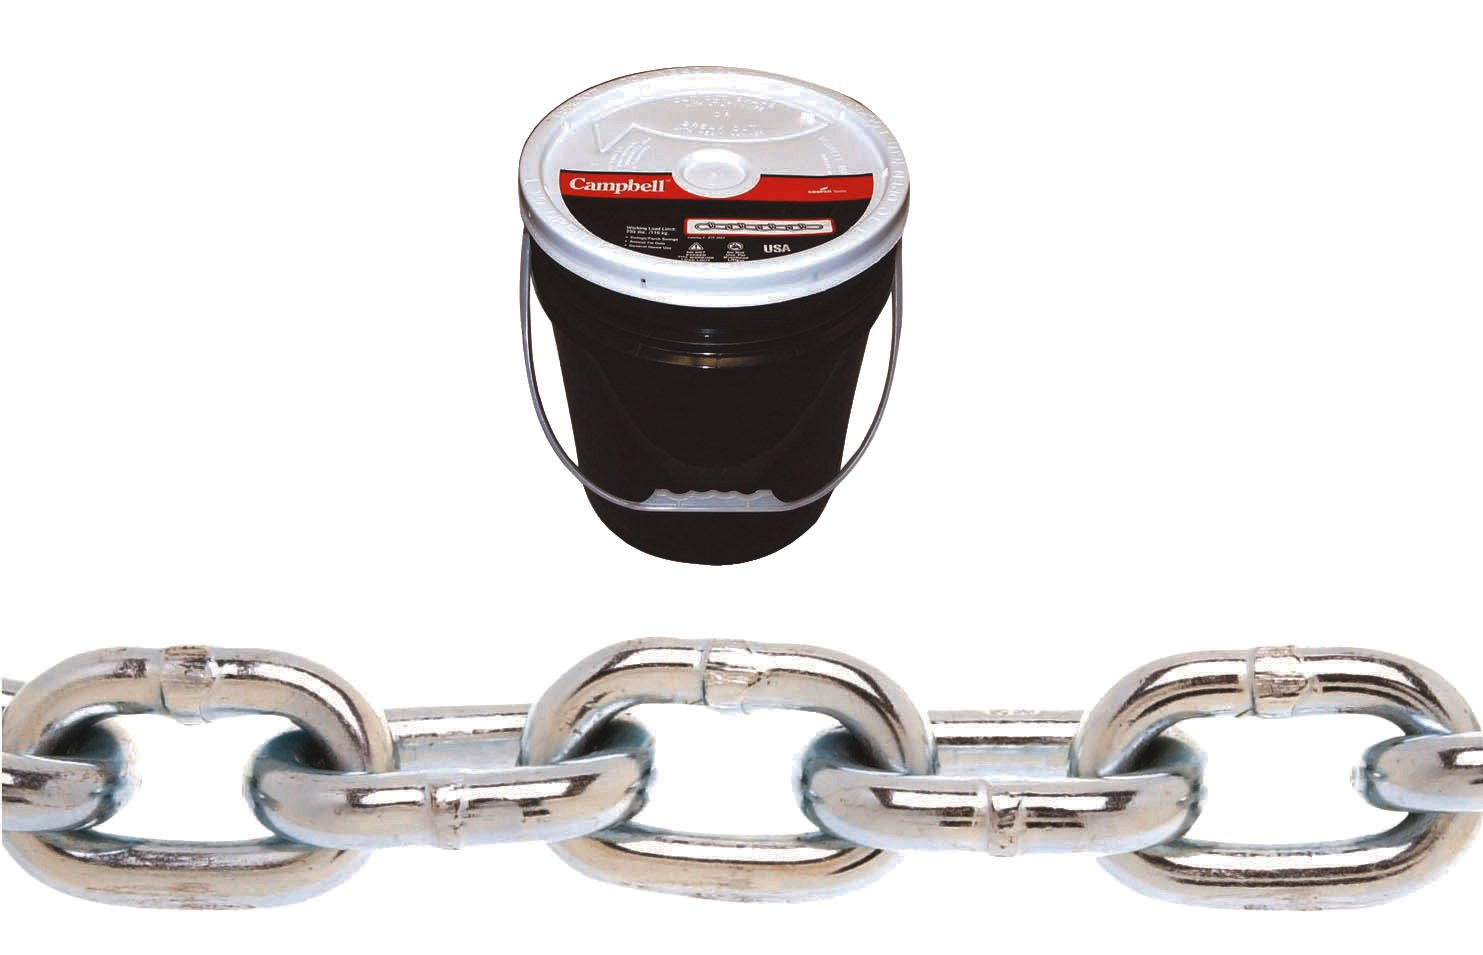 Campbell 0140823 System 3 Grade 30 Low Carbon Steel Proof Coil Chain in Round Pail, Zinc Plated, 1/2'' Trade, 0.48'' Diameter, 40' Length, 4500 lbs Load Capacity